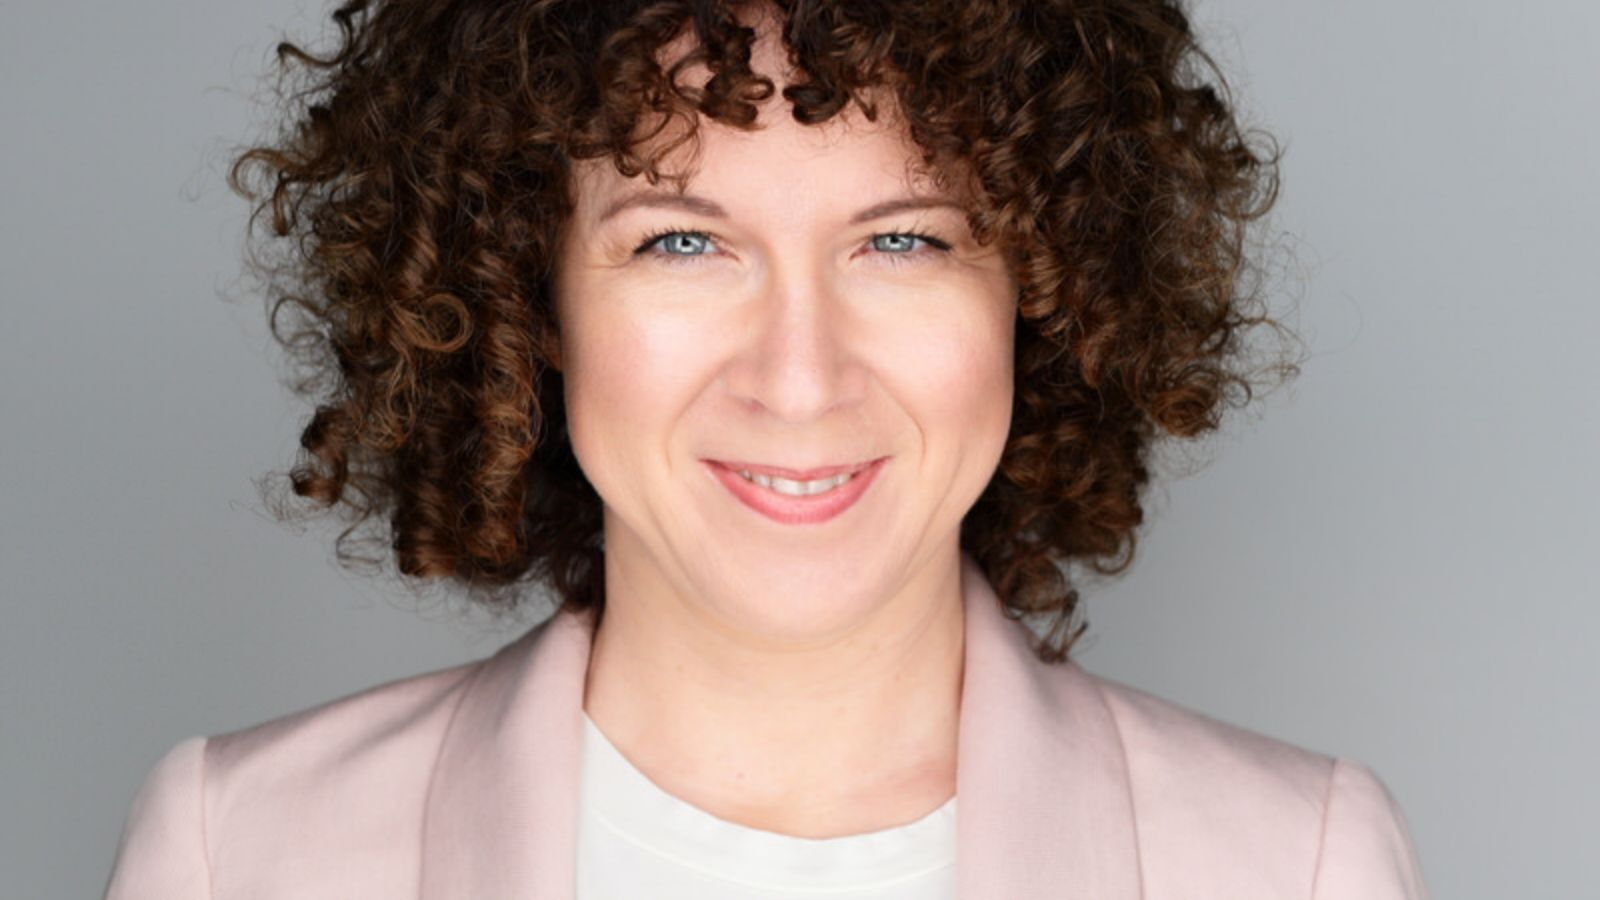 Silvia Sparry, Xaxis global COO